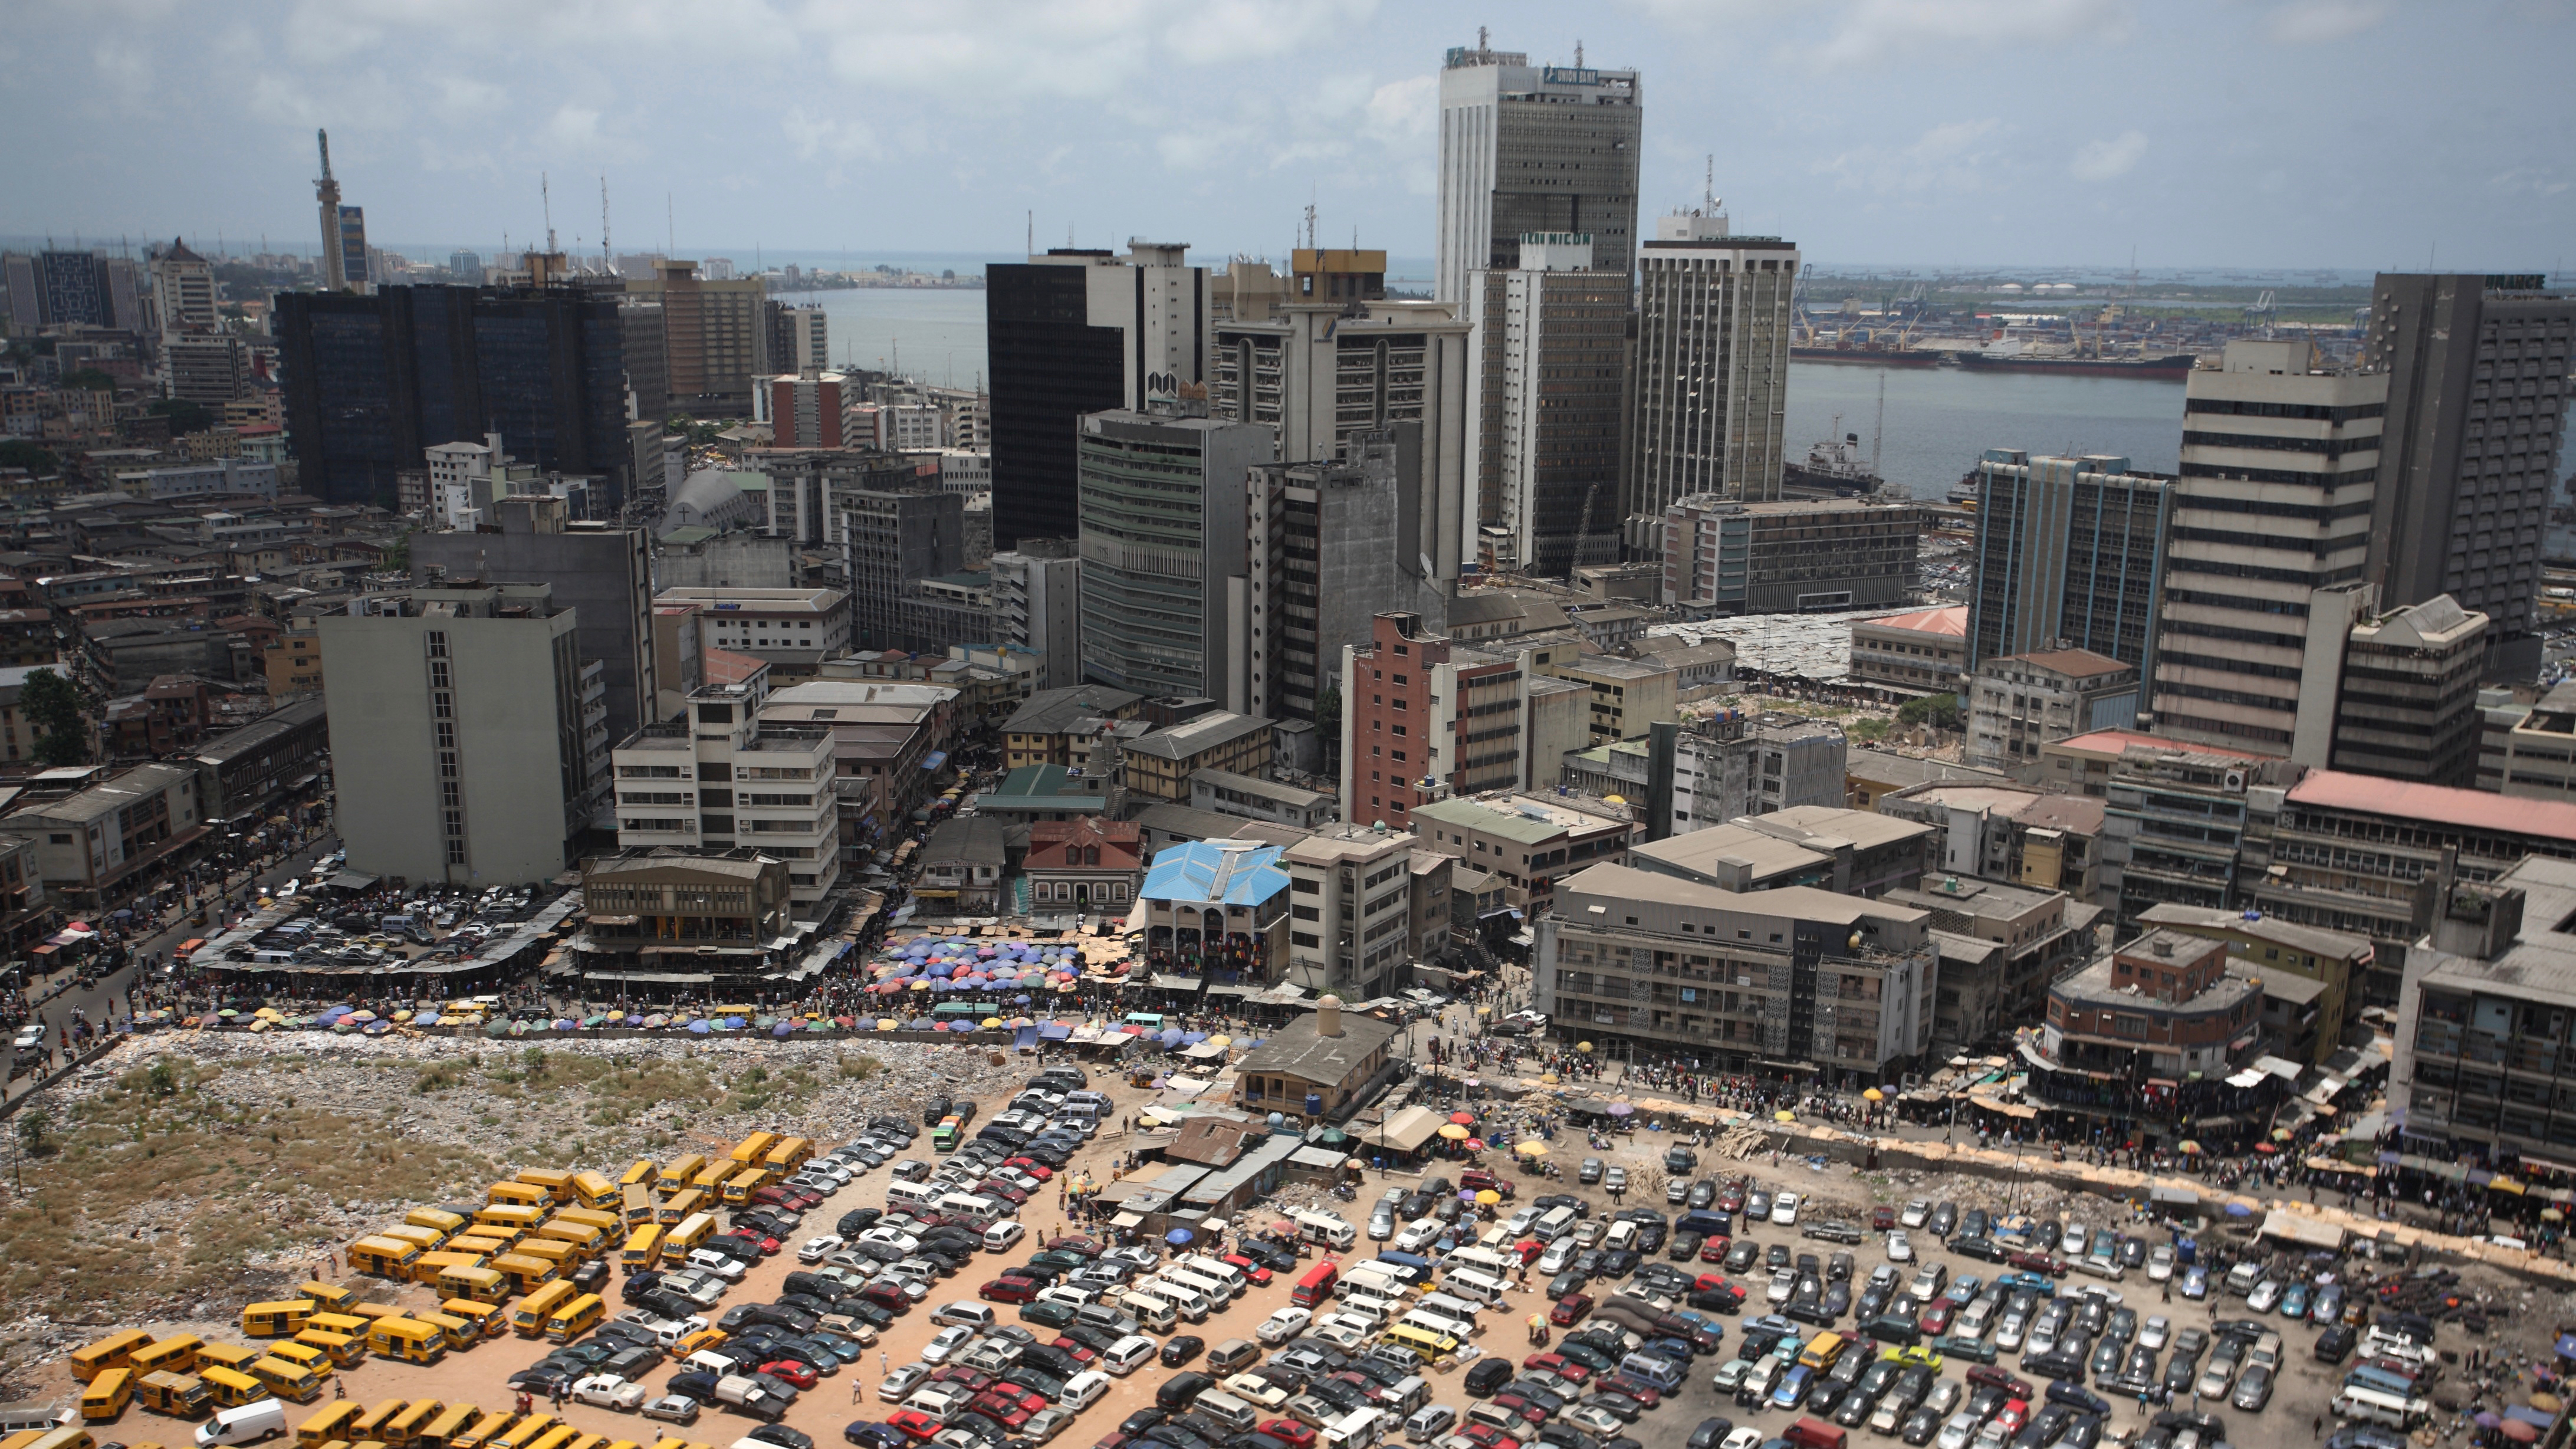 An aerial view shows the central business district in Nigeria's commercial capital of Lagos, April 7, 2009. REUTERS/Akintunde Akinleye/File Photo - RTSK985